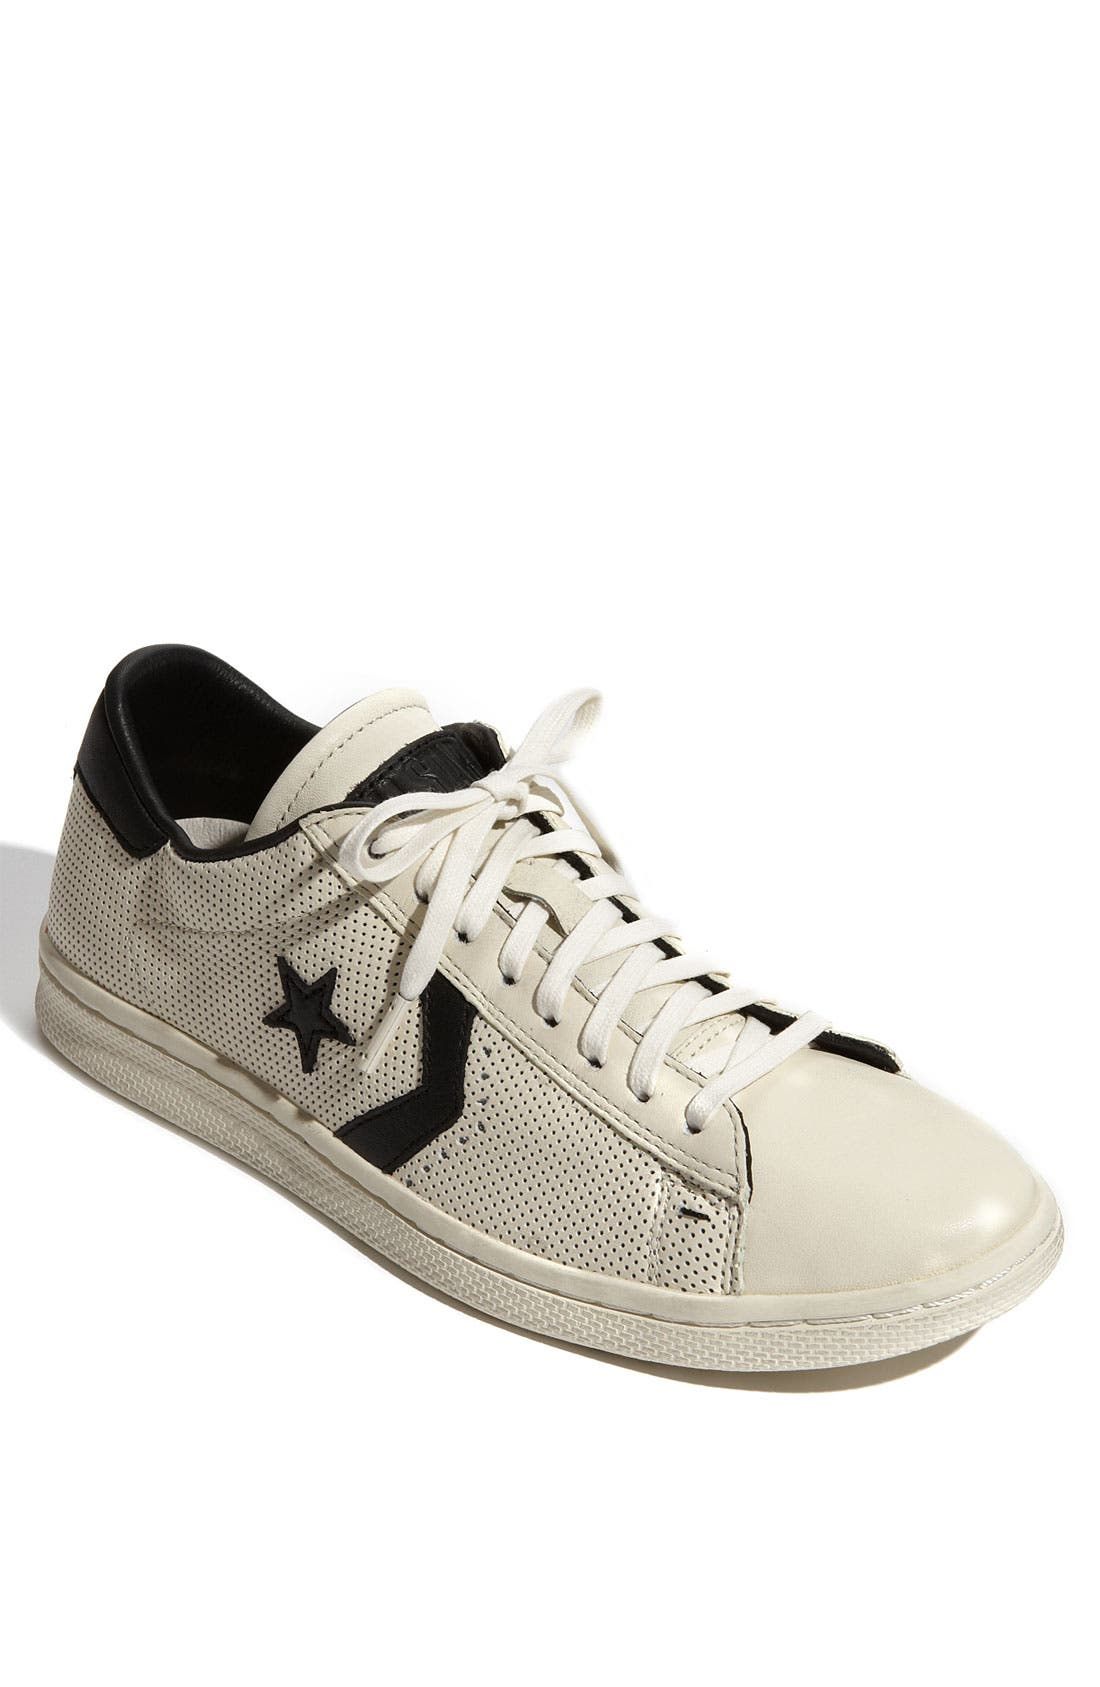 Main Image - Converse by John Varvatos 'Star Player' Leather Sneaker